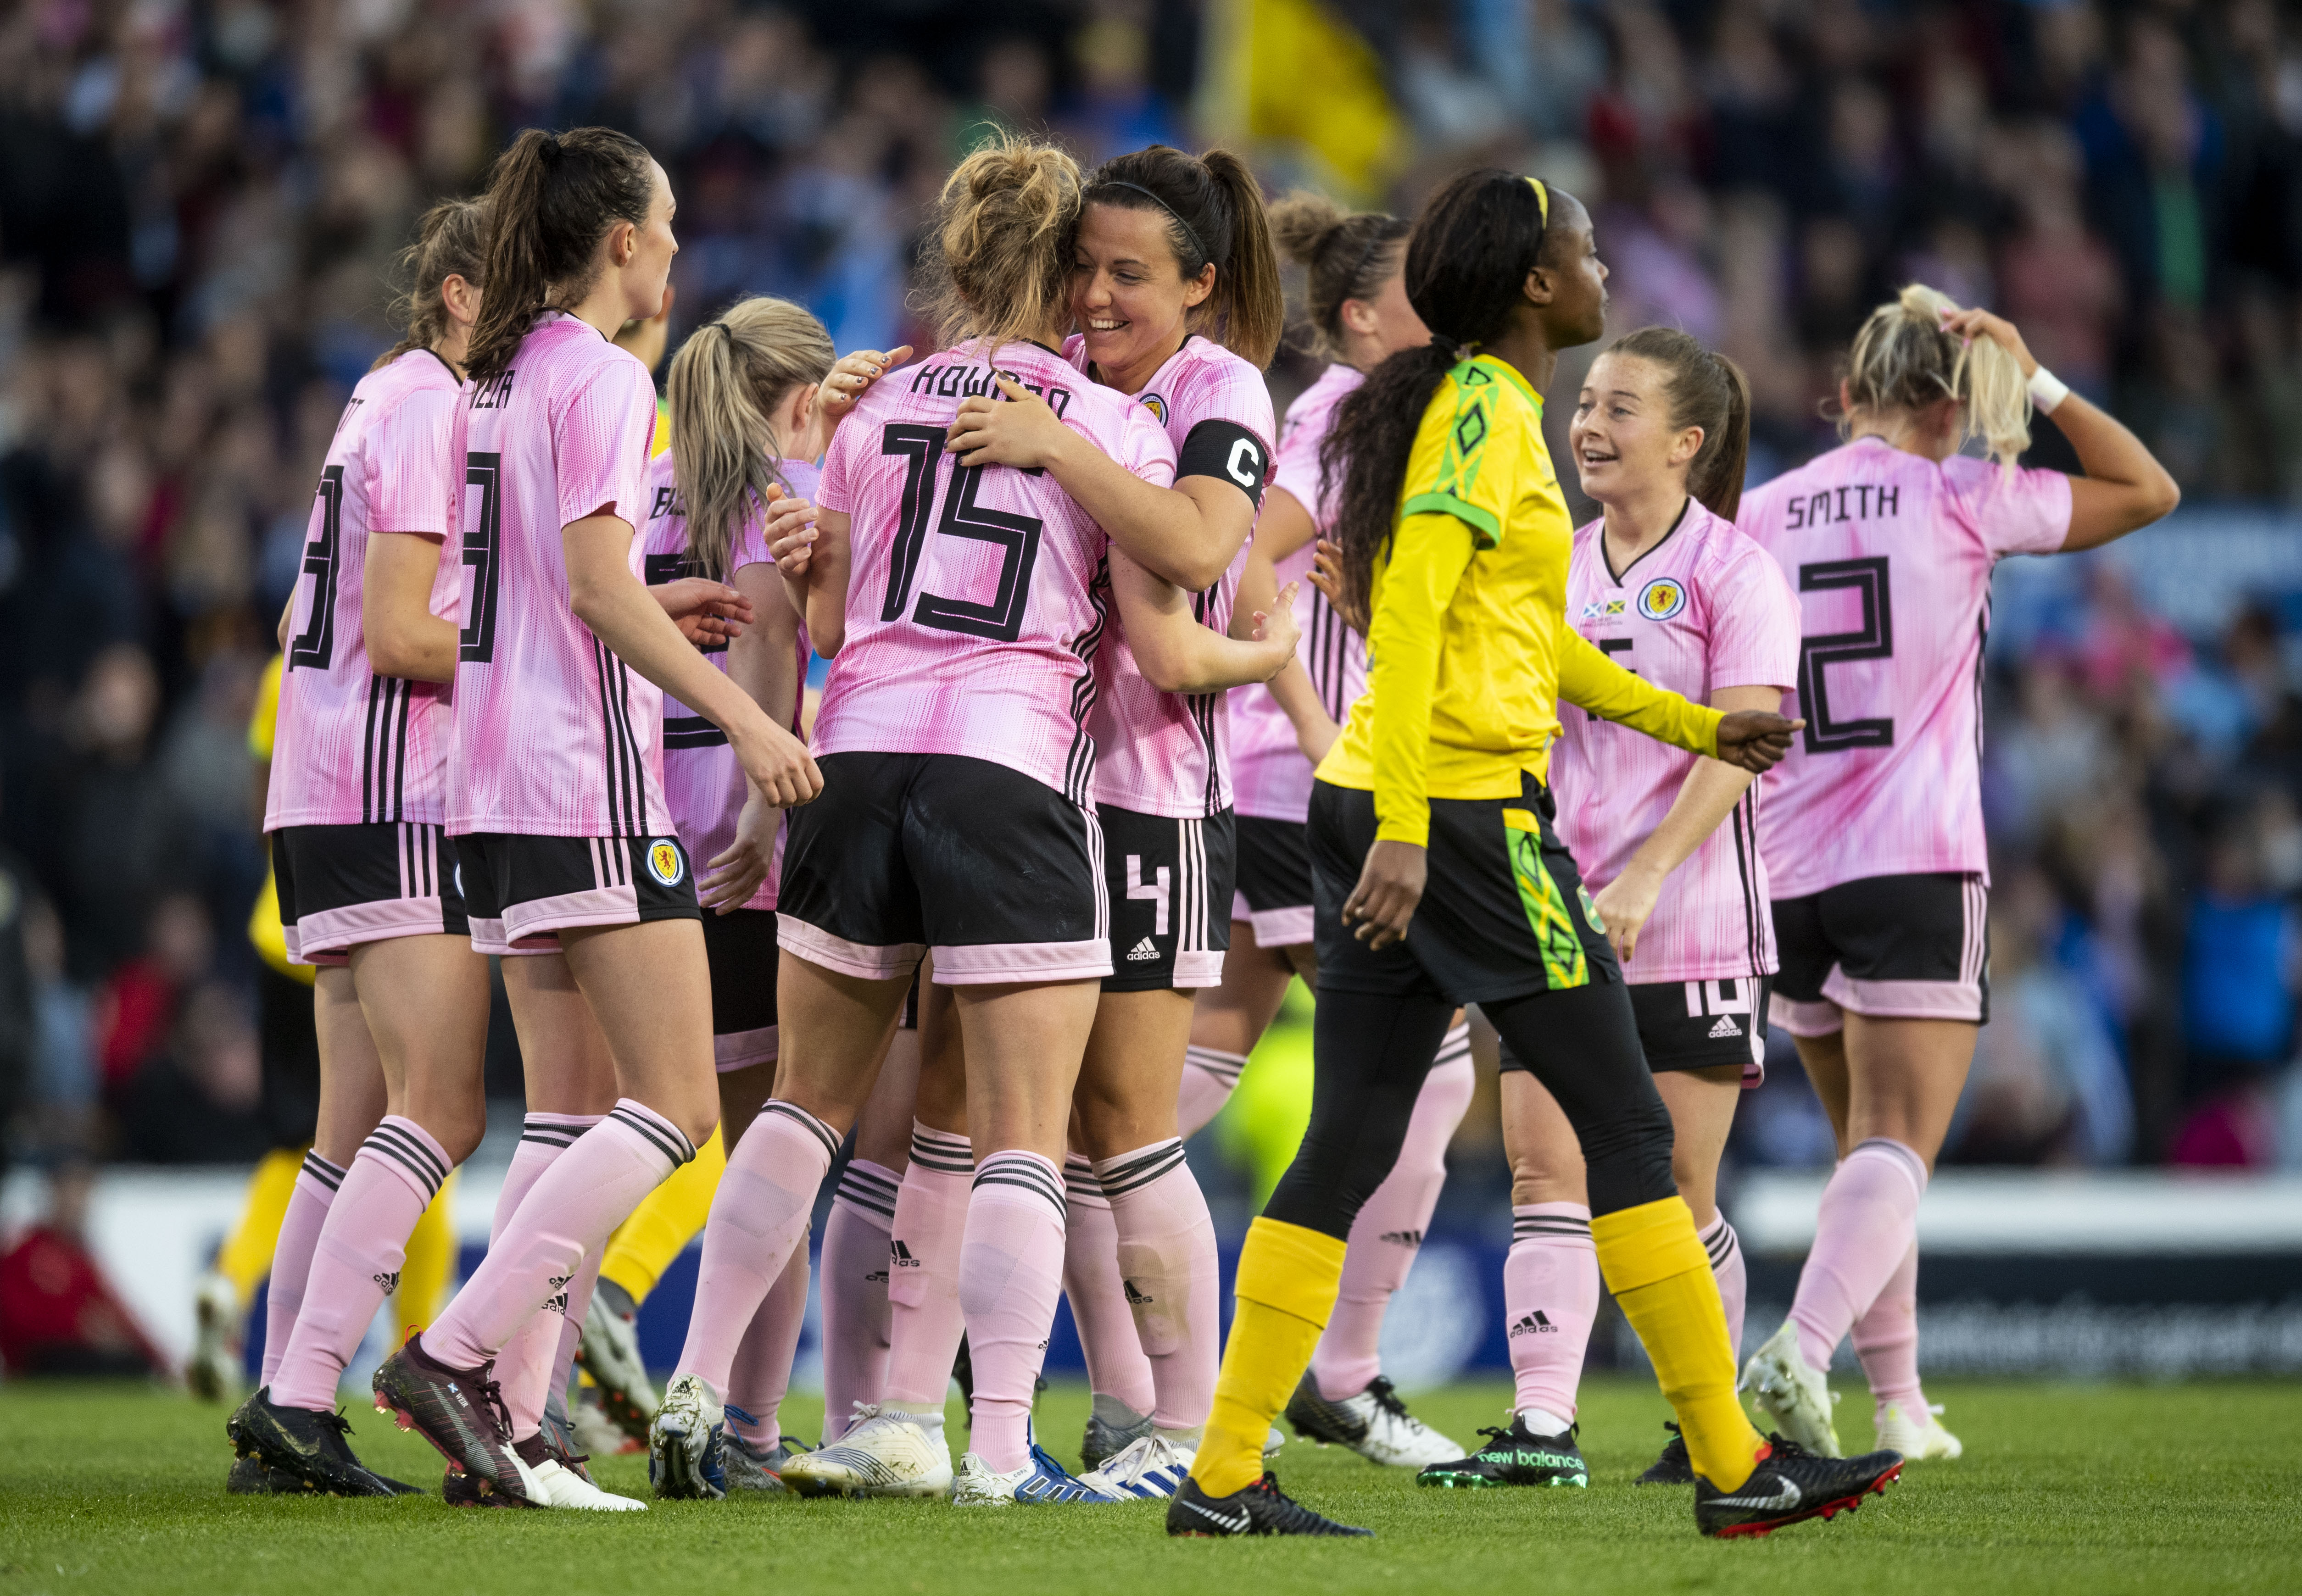 Scotland's women have contributed to a donation made by both the men's and women's national teams.